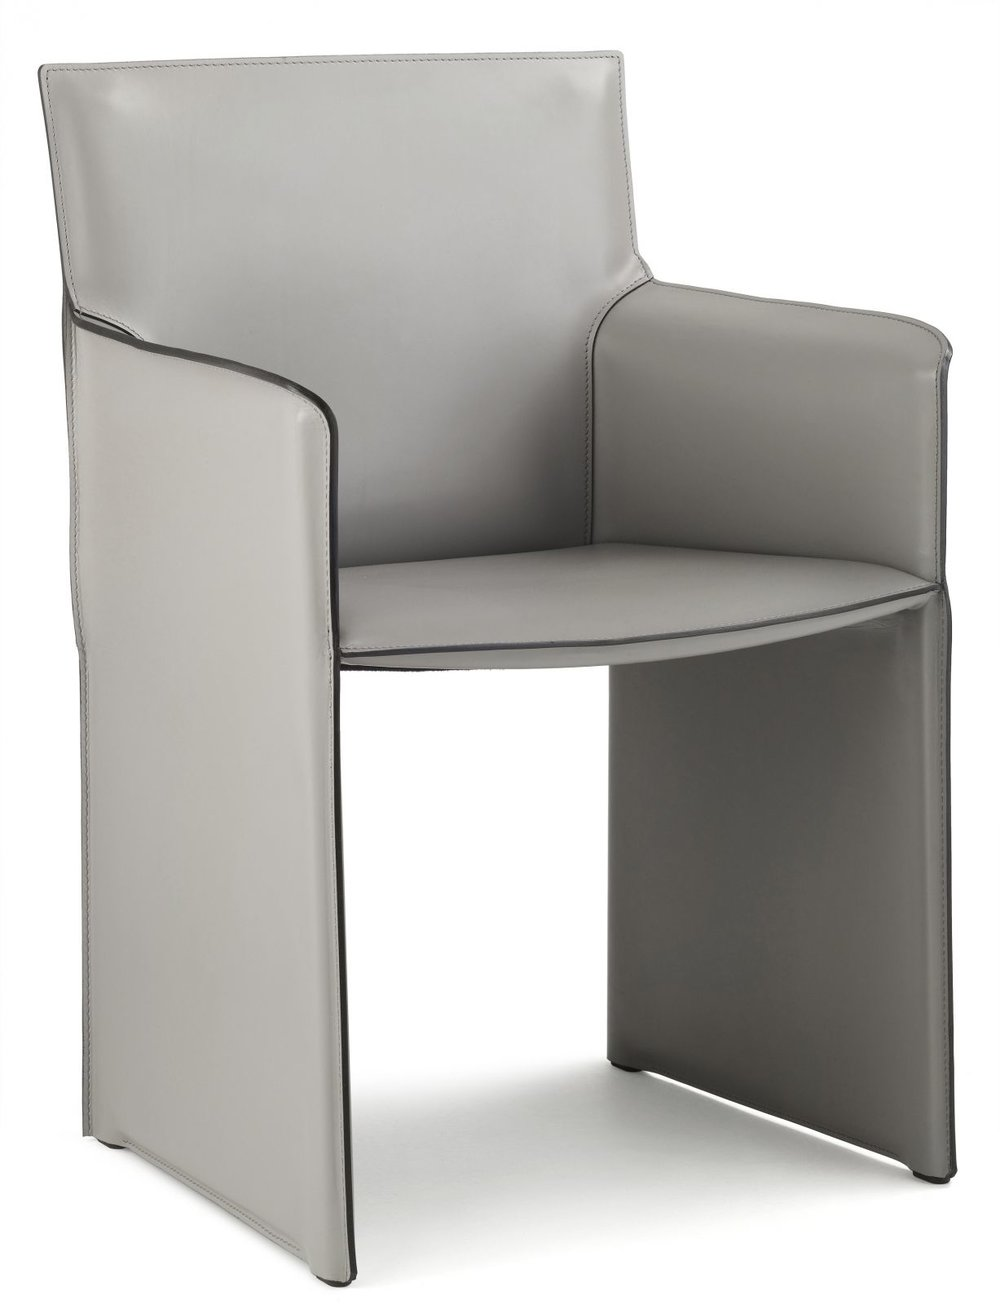 MOF 26 Modern Office Chair